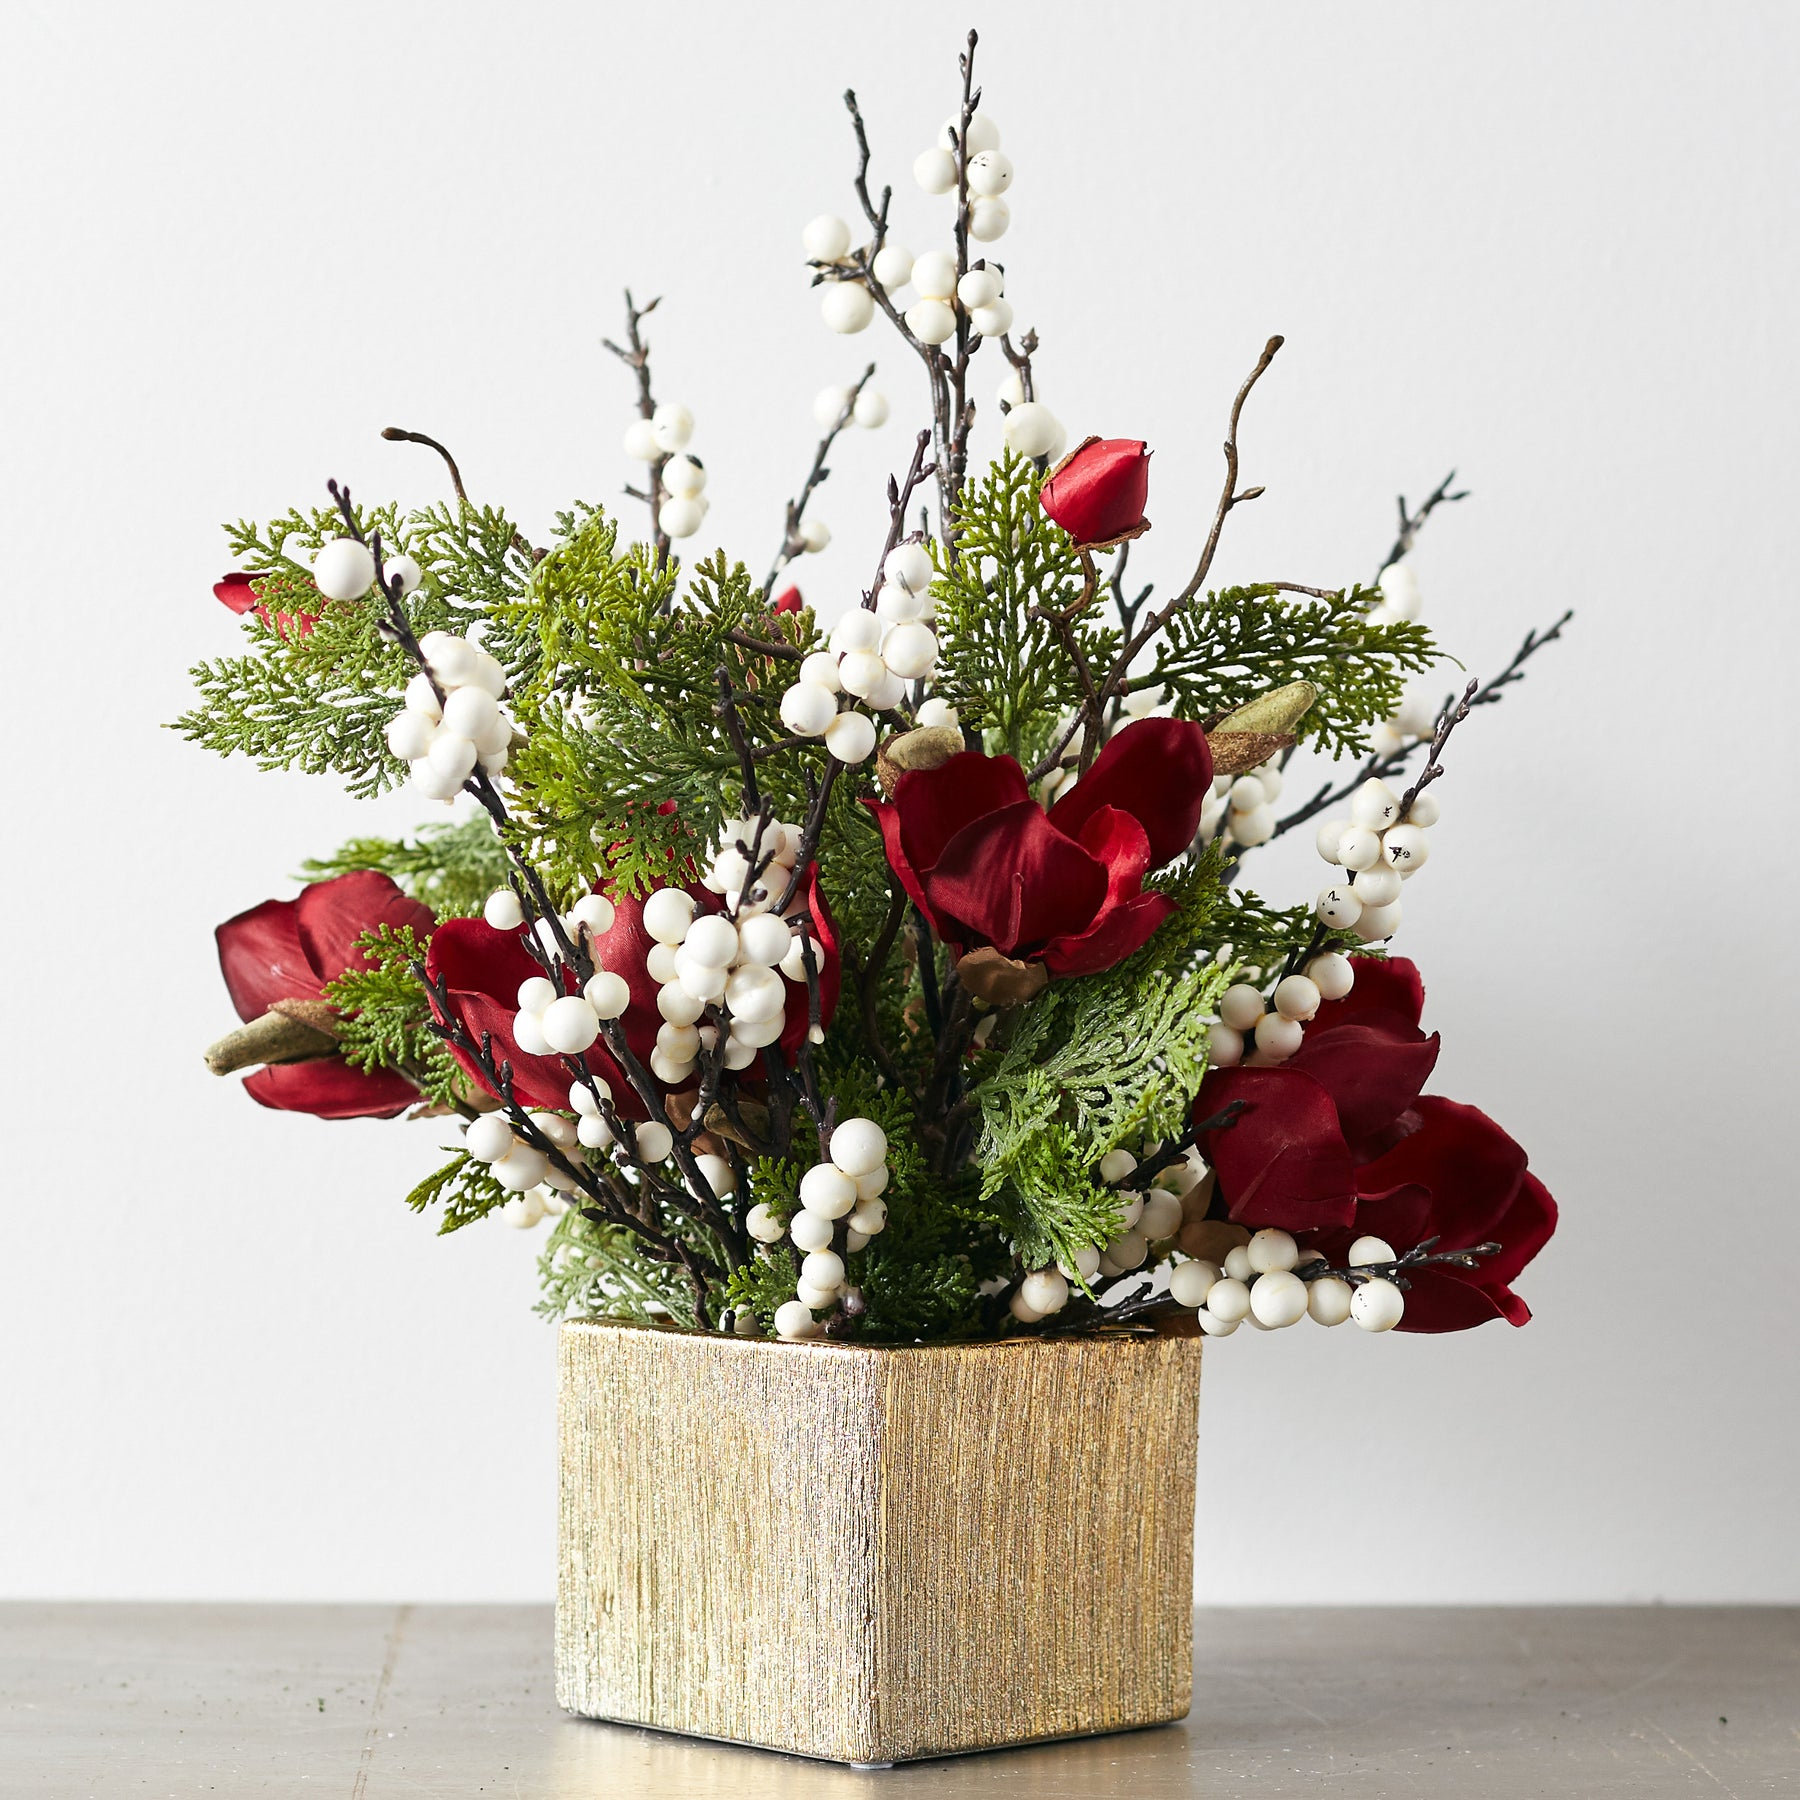 Snowy Red Berry Pine Boxwood Christmas Arrangement In White Faux Bi Darby Creek Trading